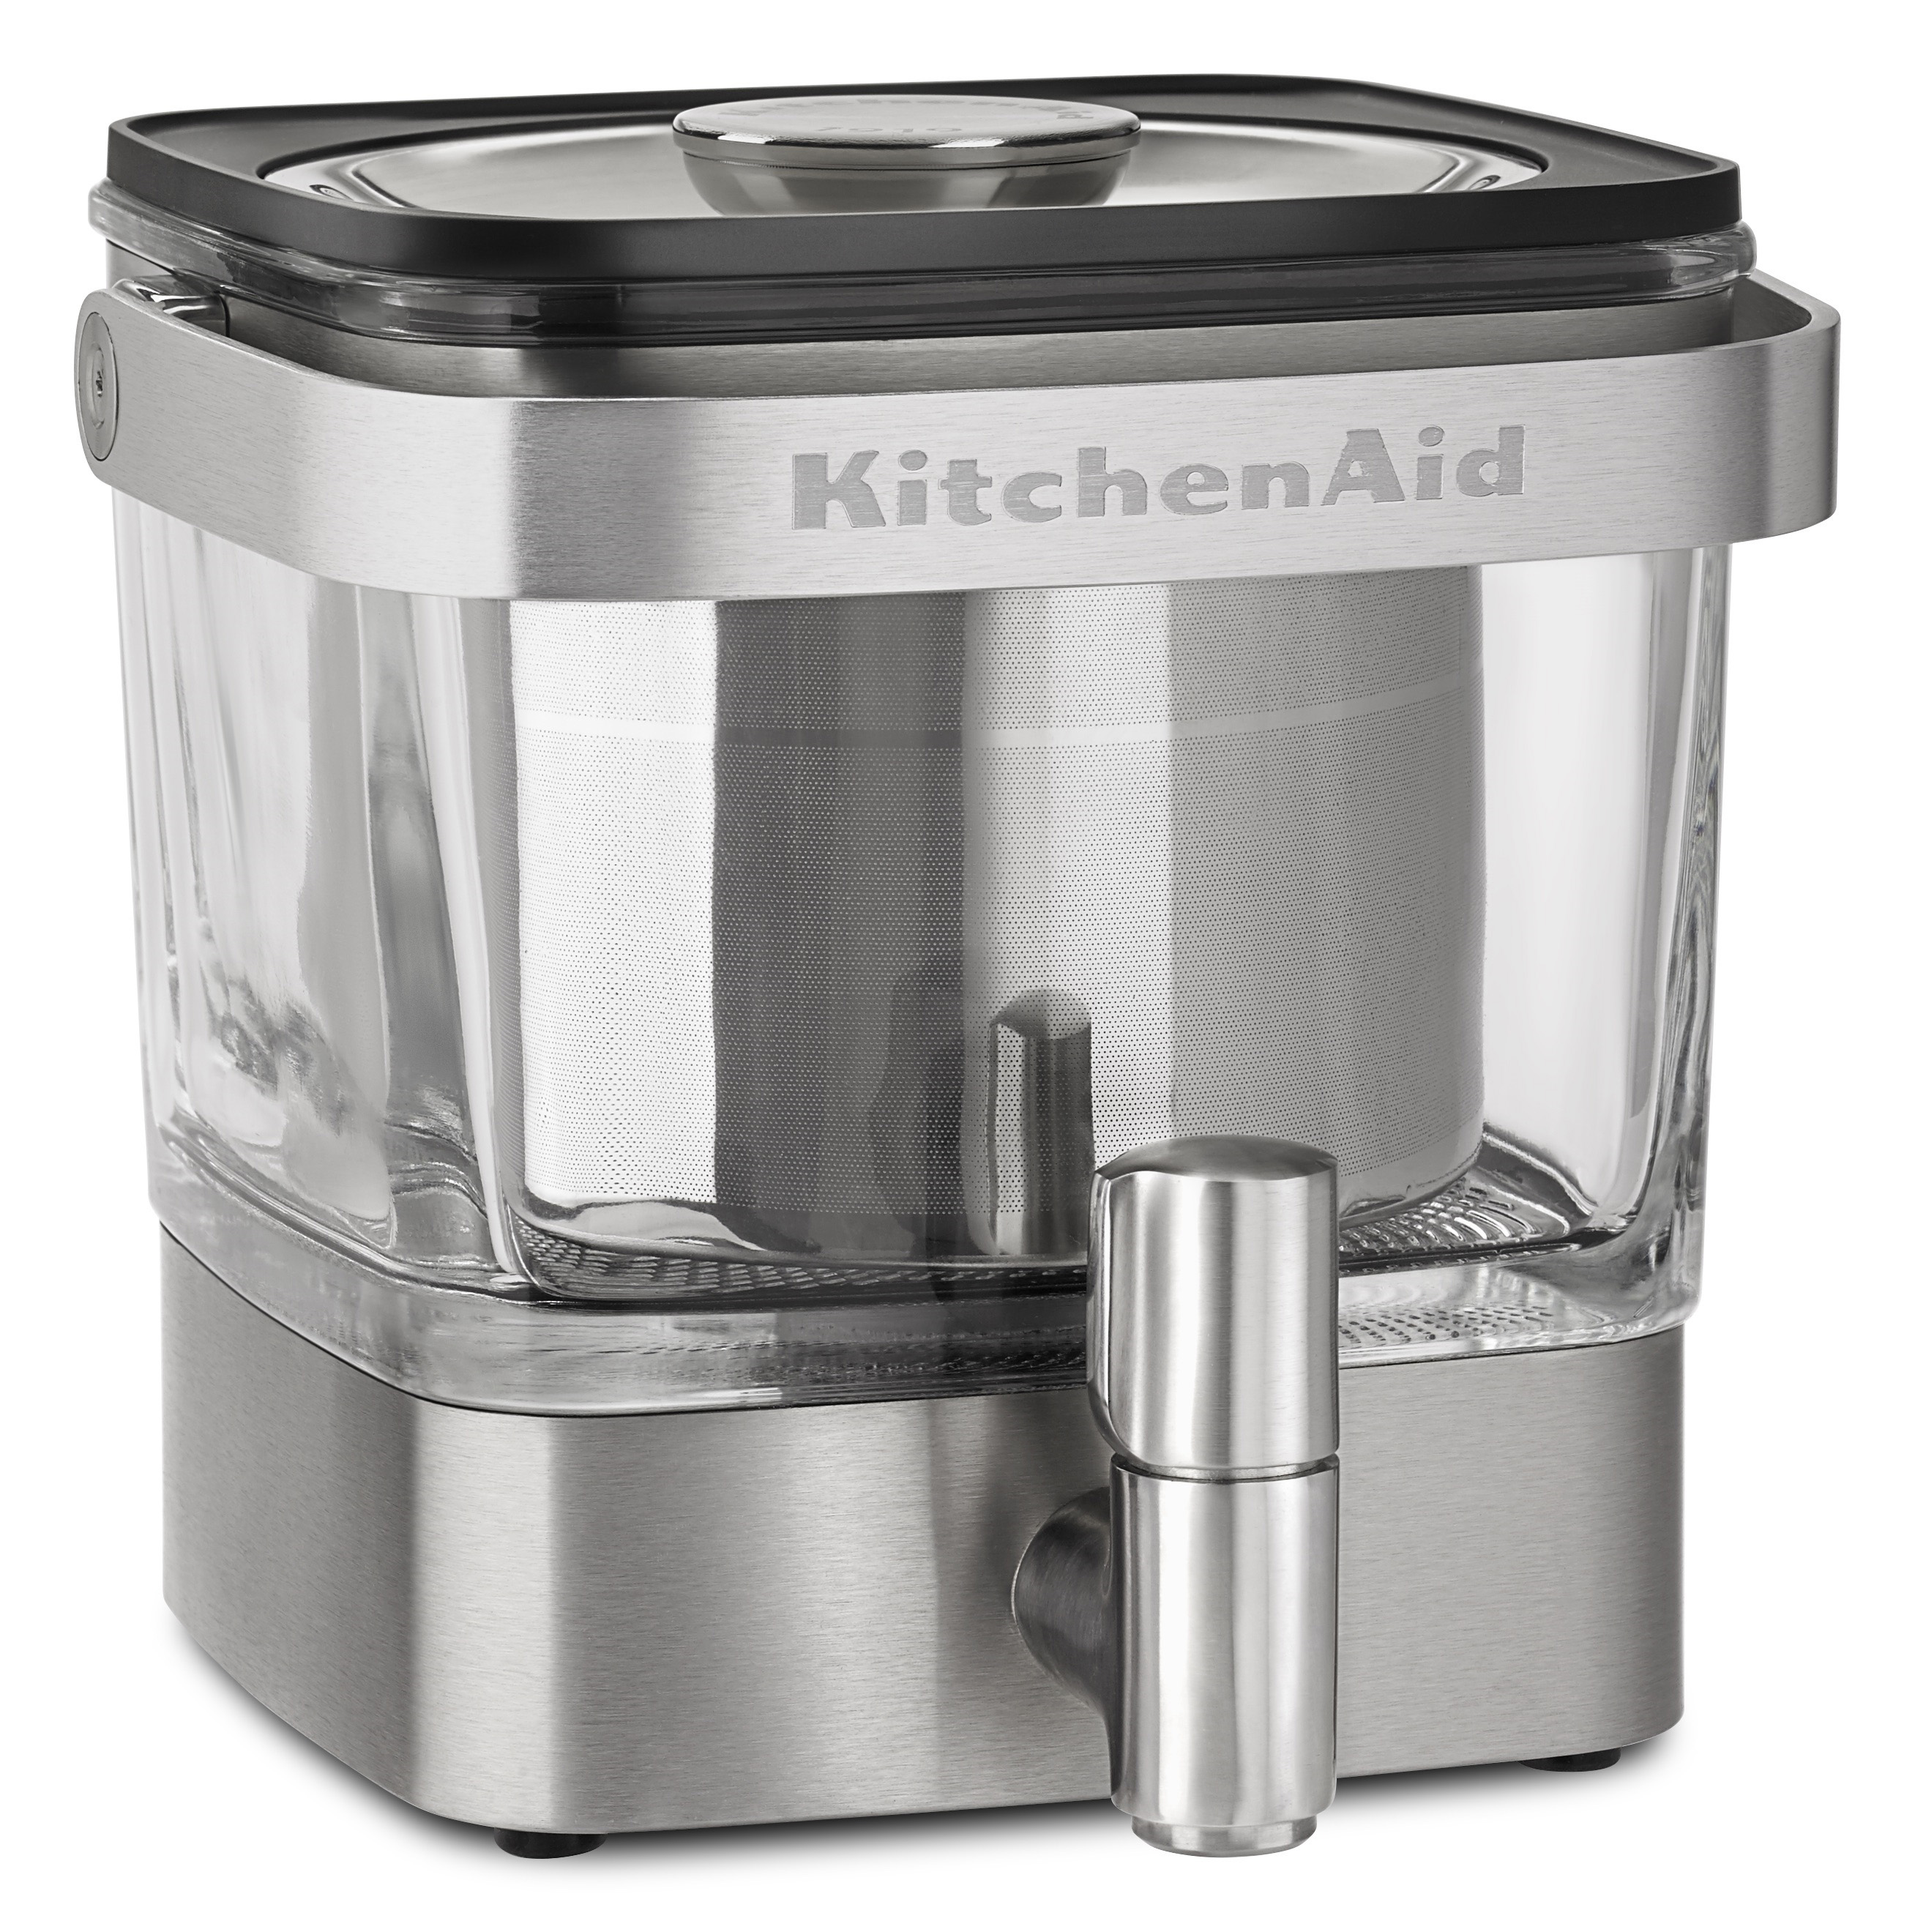 New KitchenAid® Cold Brew Coffee Maker Makes Home Brewing A Breeze